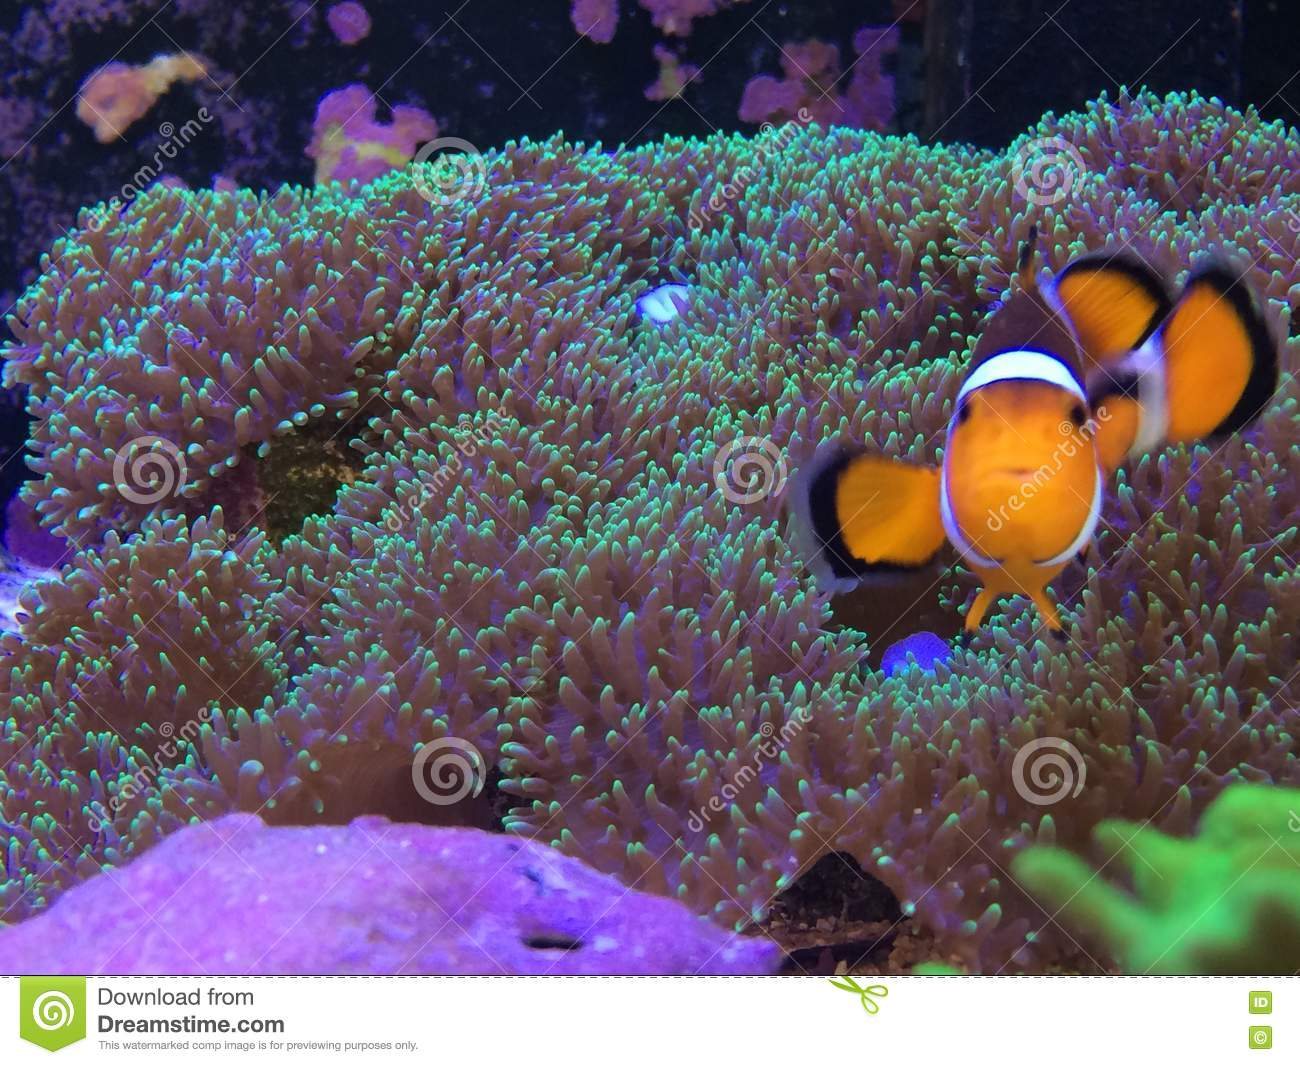 Fish in tank nemo - Finding Nemo On A Real Fish Tank Playing On A Mushroom Coral Stock Photos